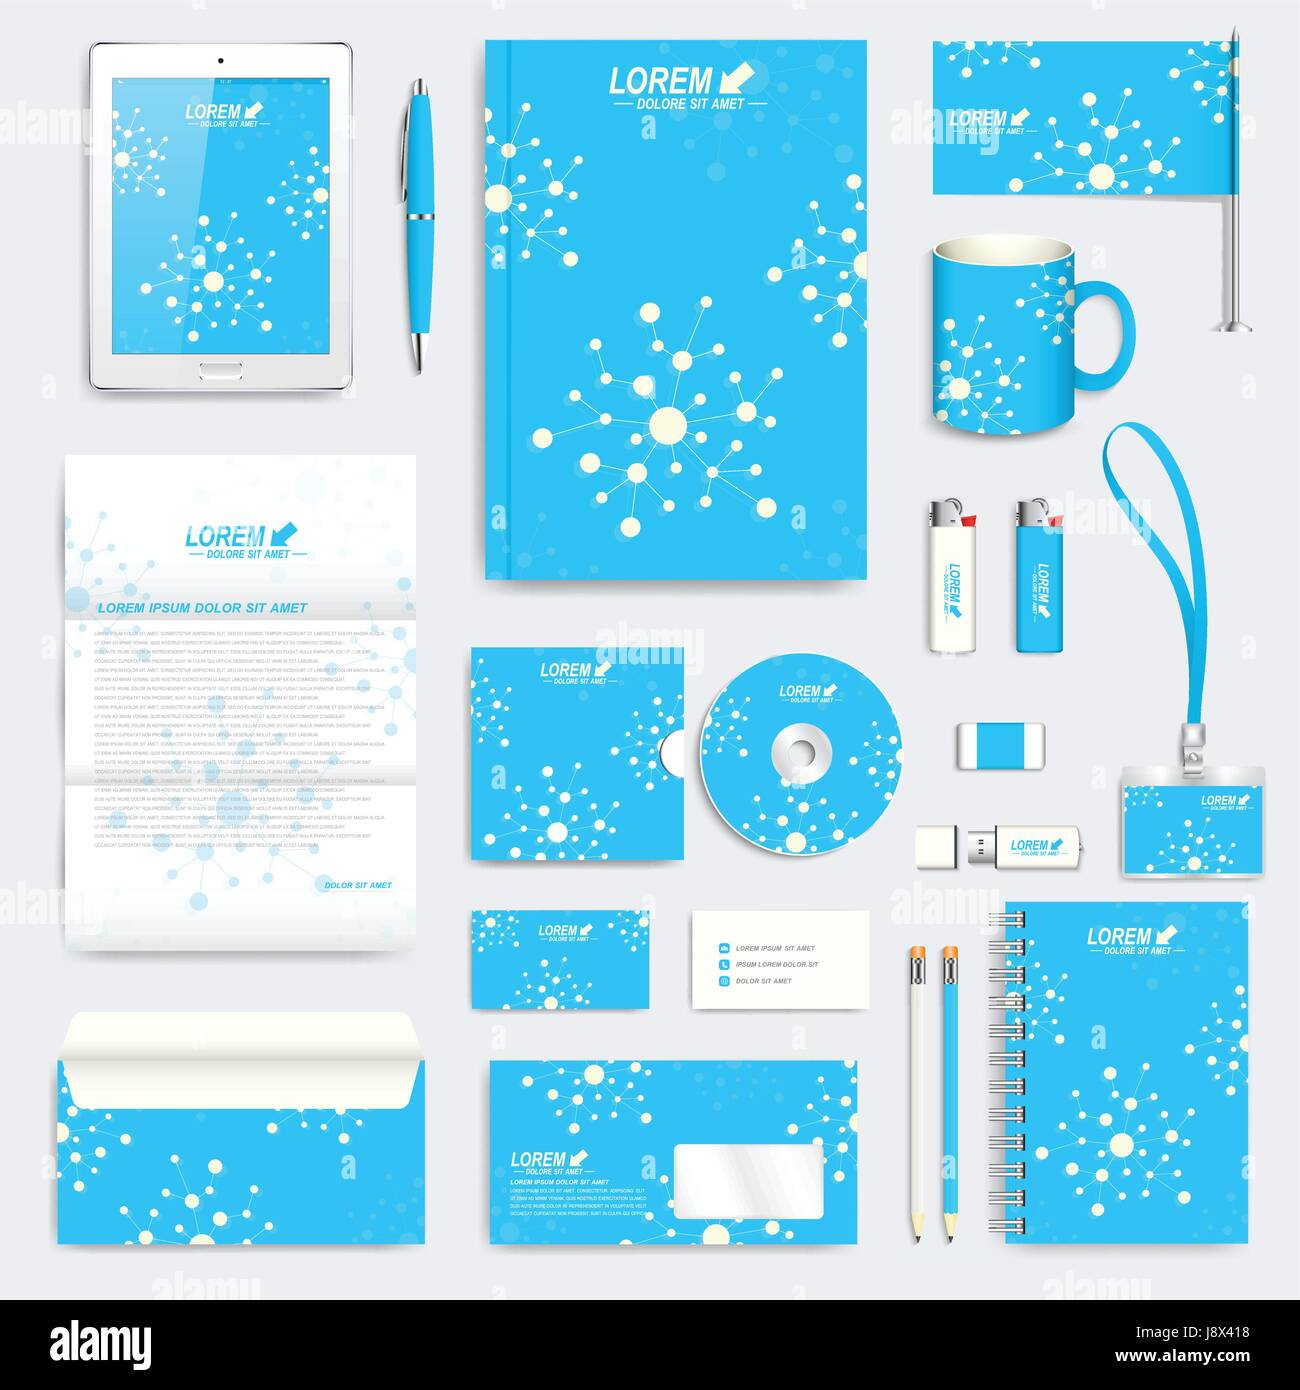 Corporate Stationery: Business Envelope Stock Photos & Business Envelope Stock